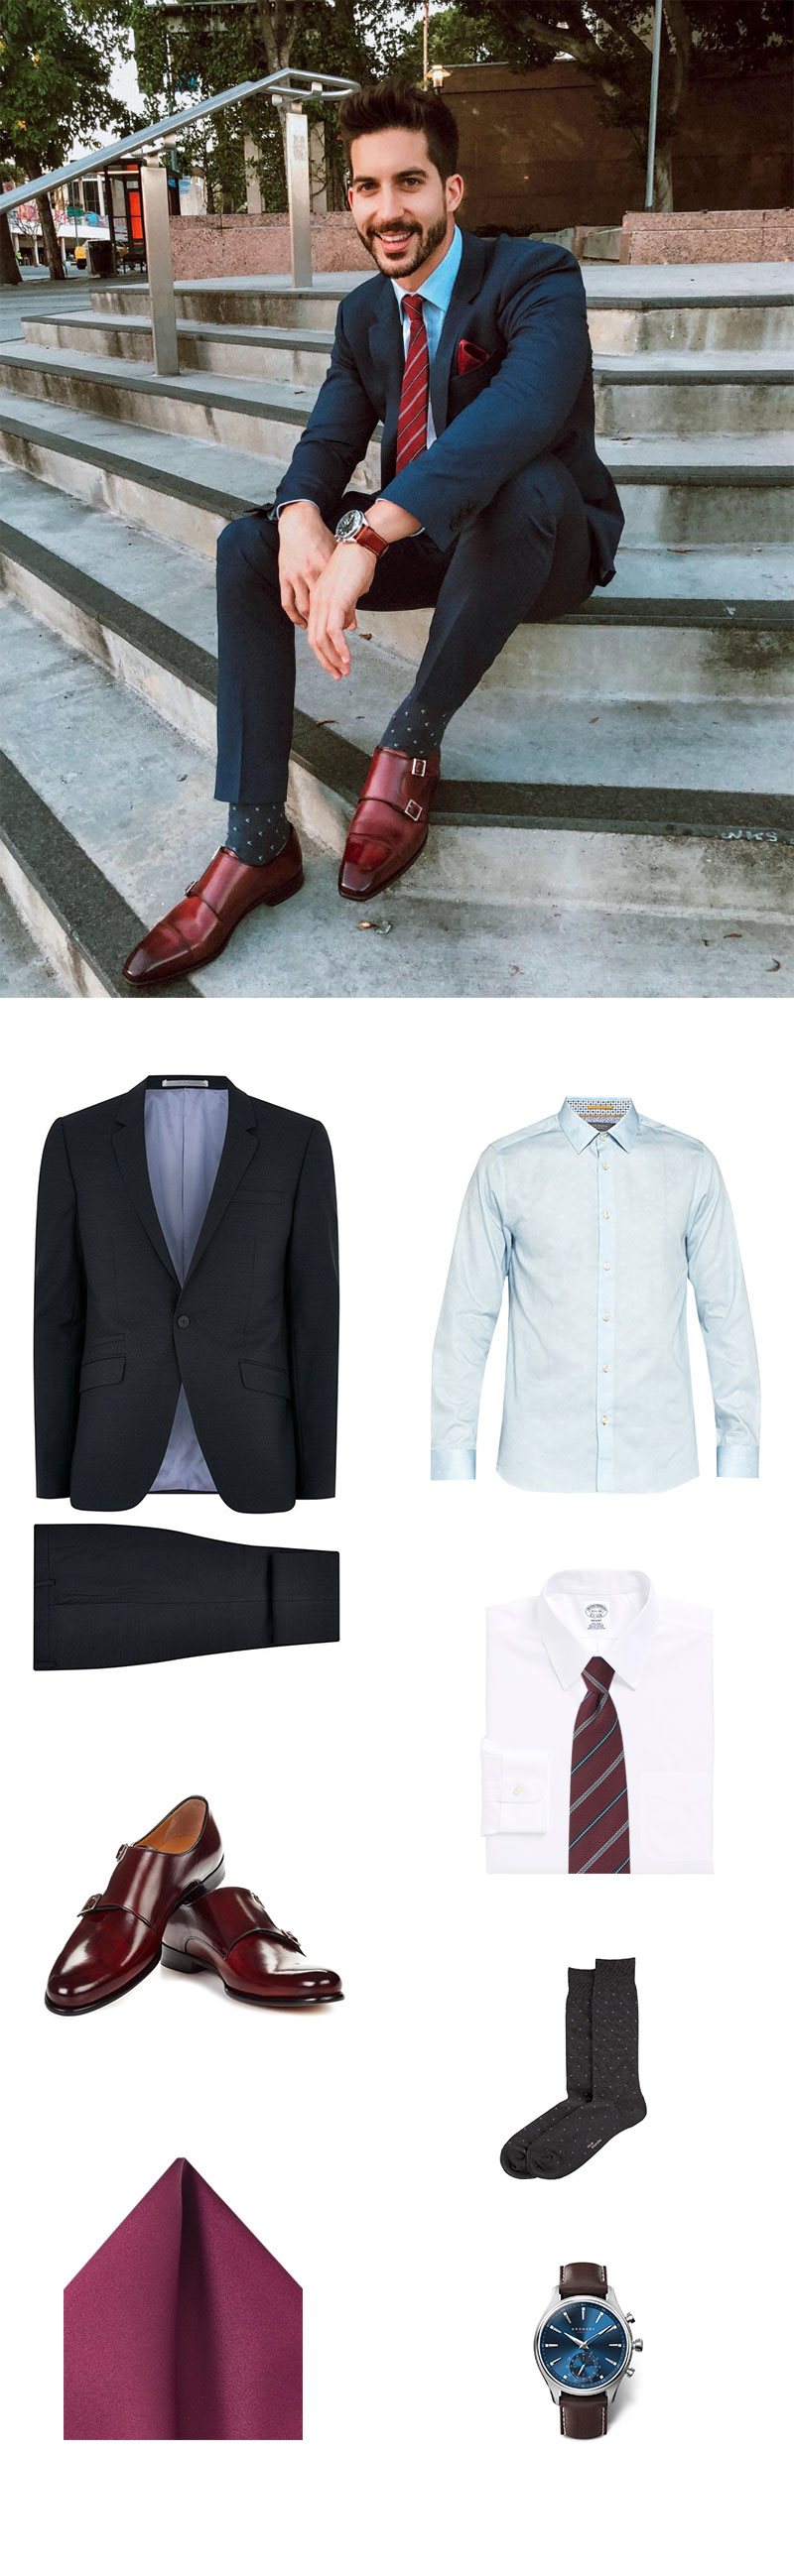 Modern Suiting And Accessories